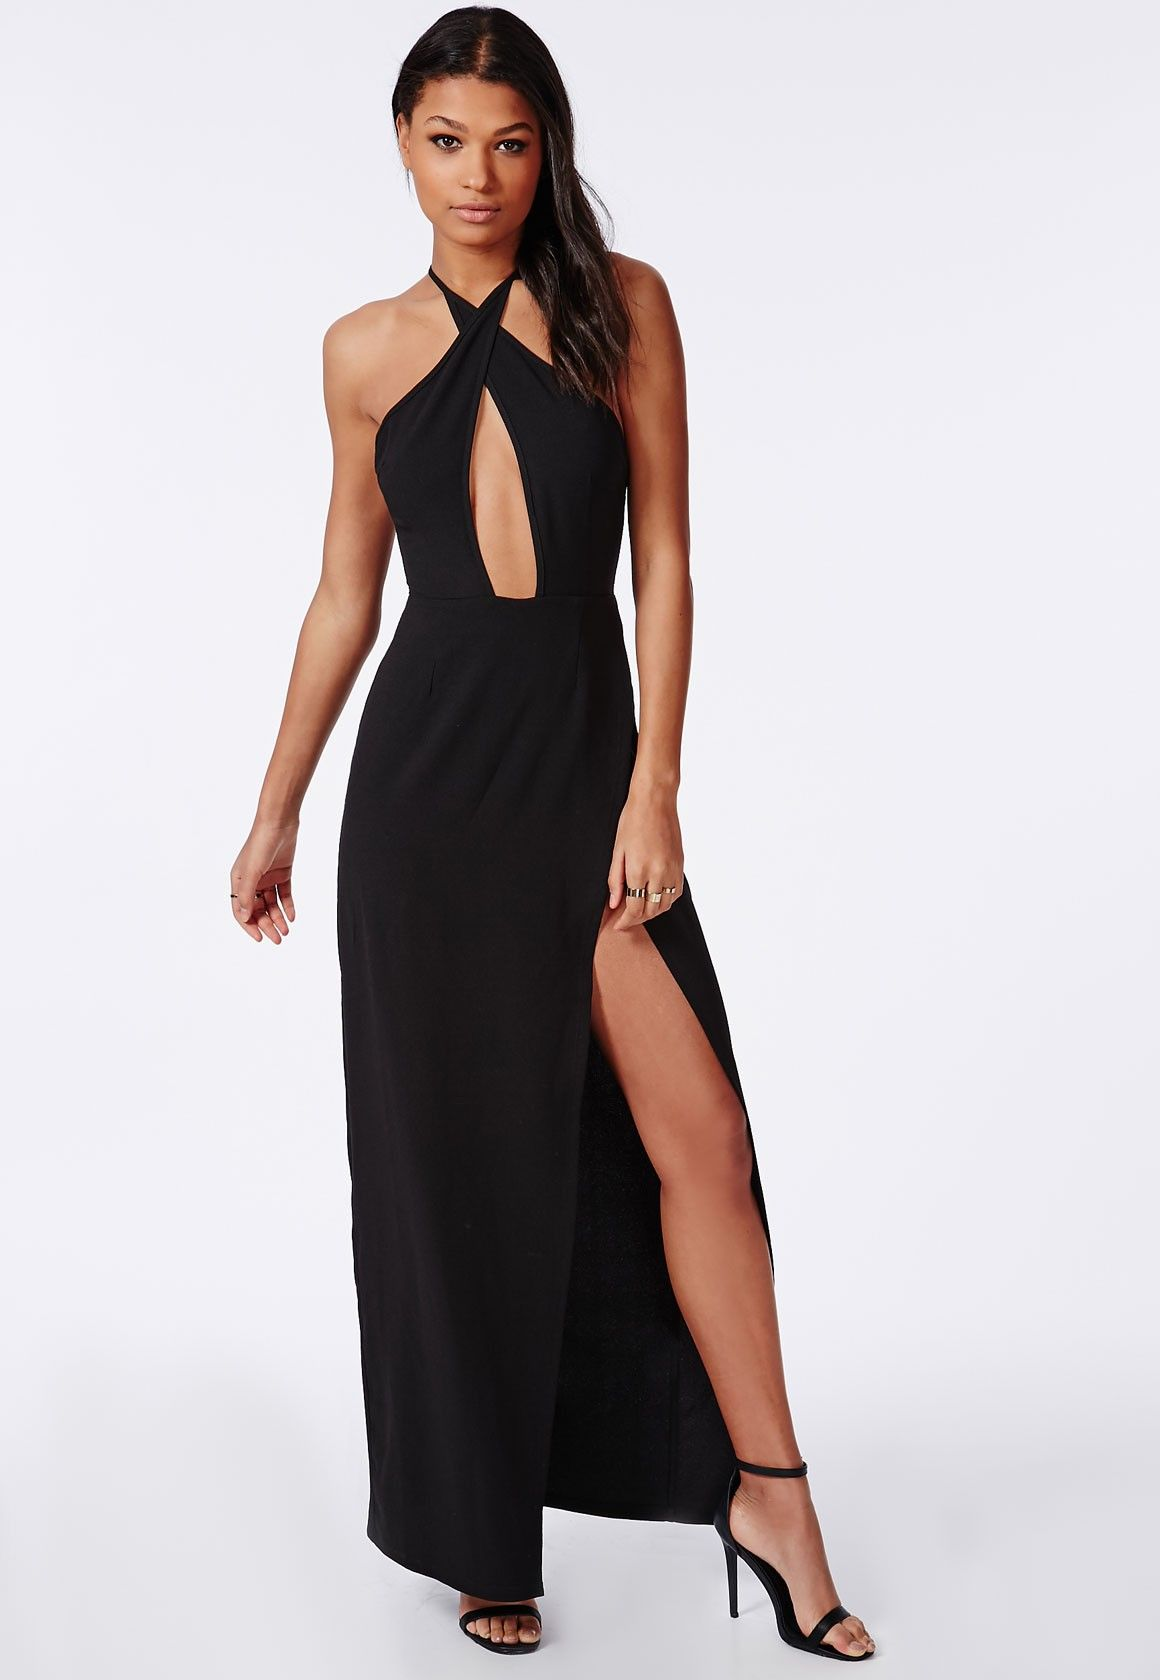 Look seriously chic in this crepe fabric black maxi dress ...